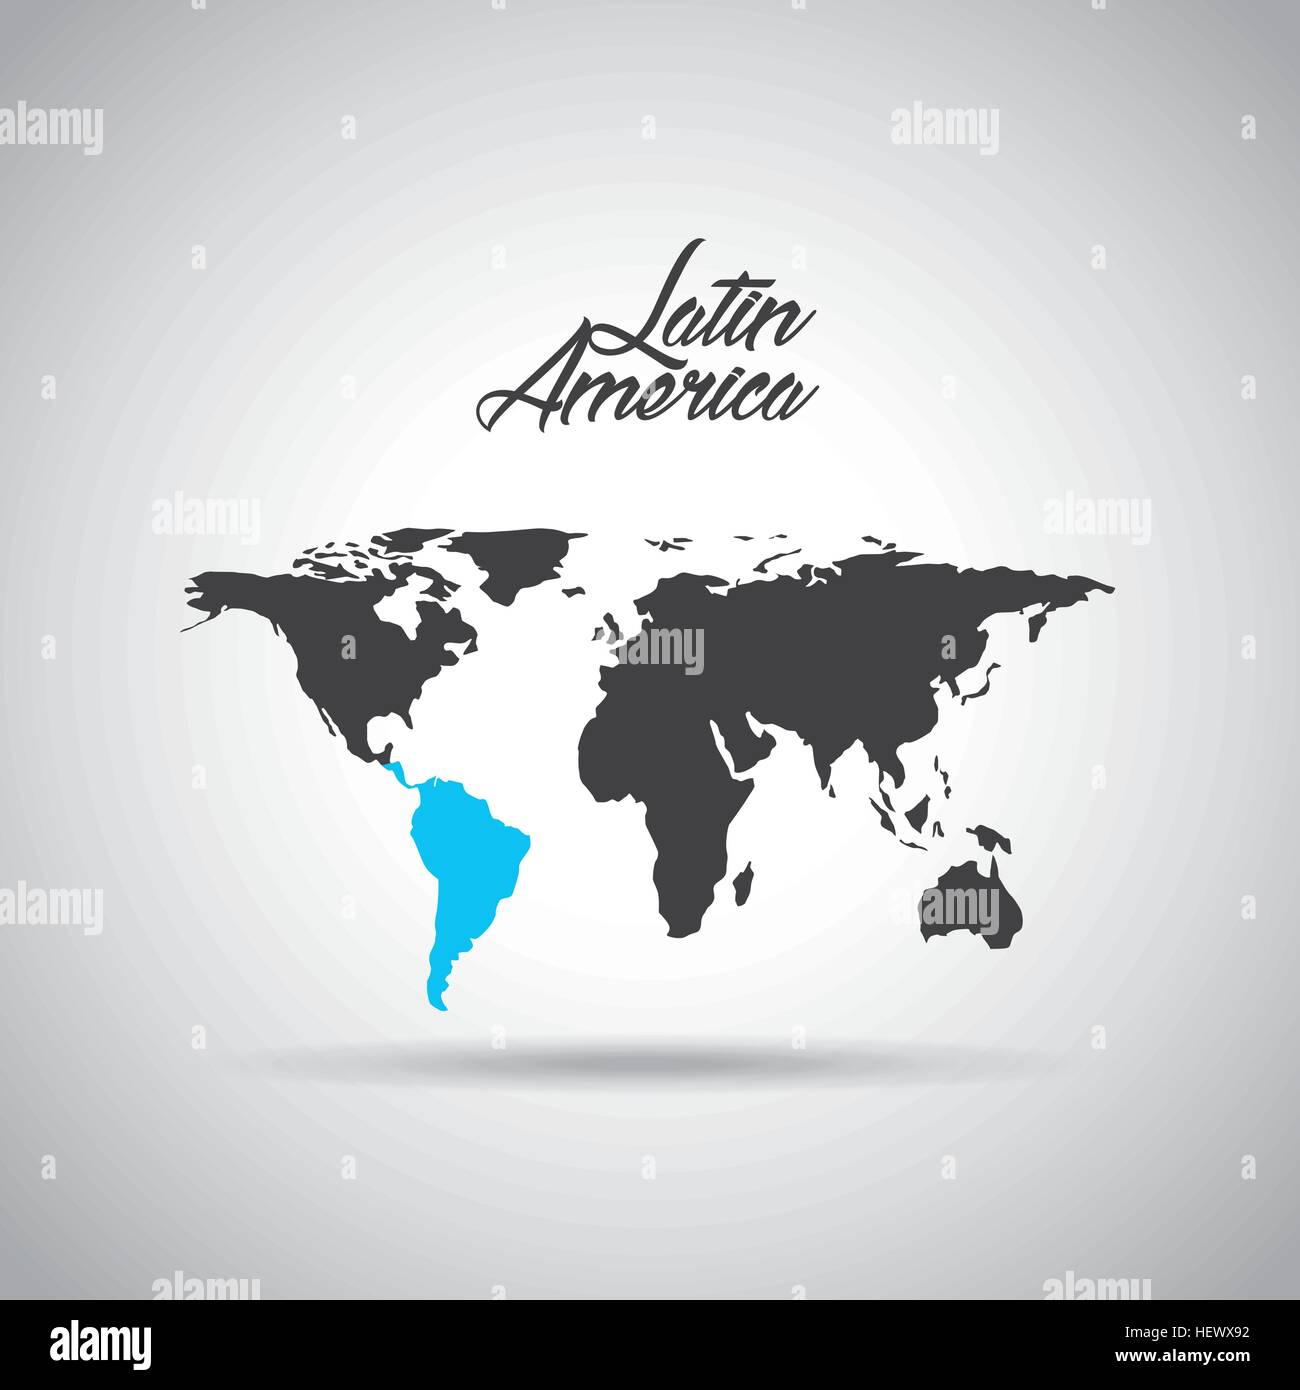 World map with latin america map in blue color icon over white stock world map with latin america map in blue color icon over white background vector illustration gumiabroncs Images